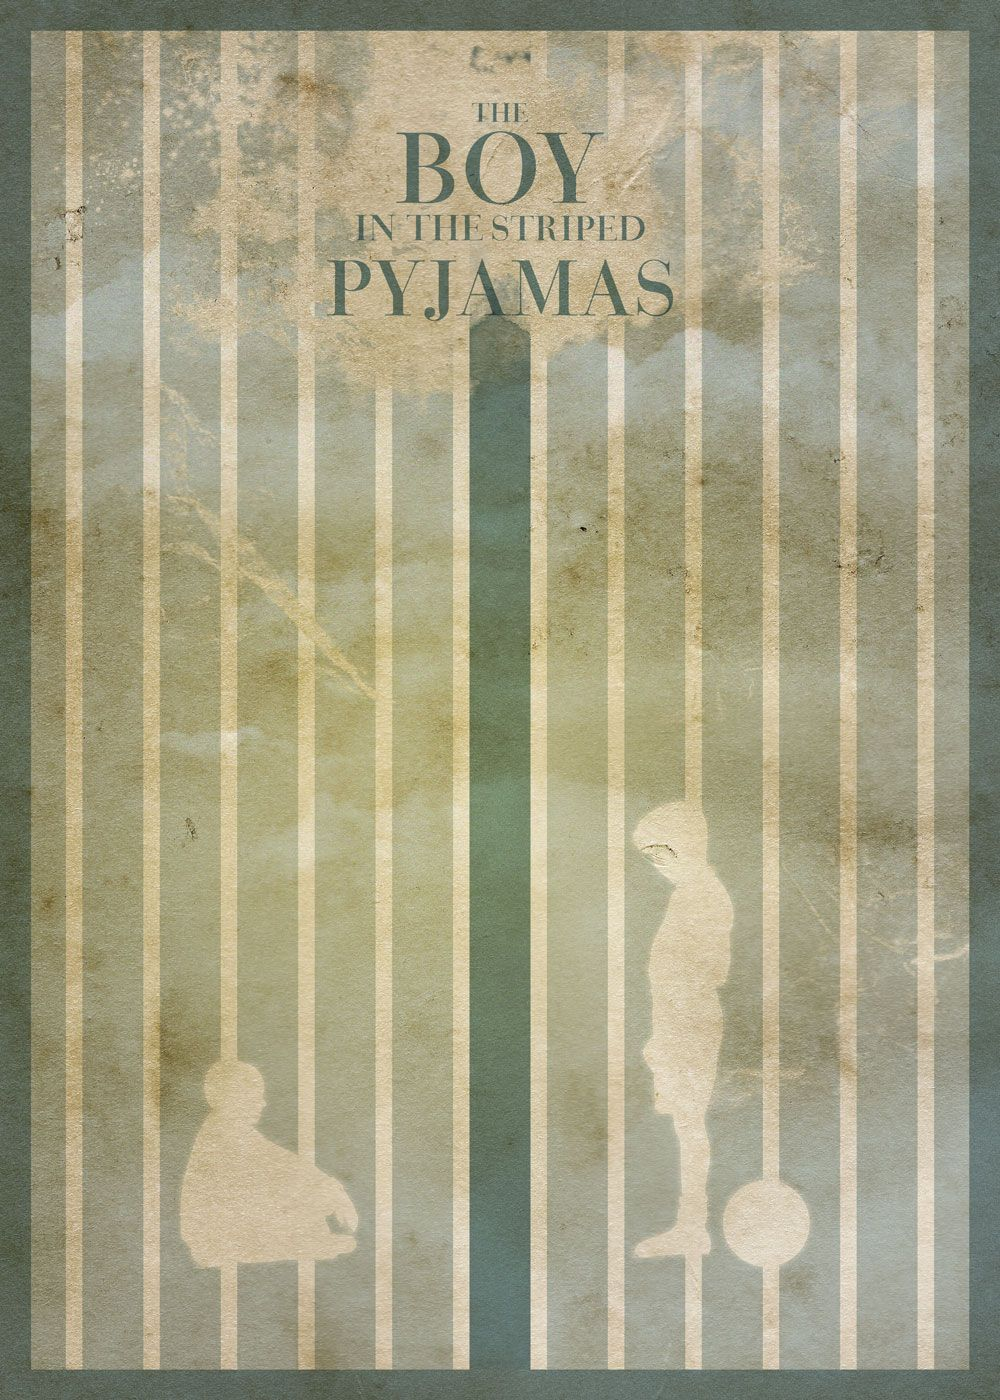 gianni de conno from the boy in the striped pyjamas a r t e the boy in the striped pyjamas